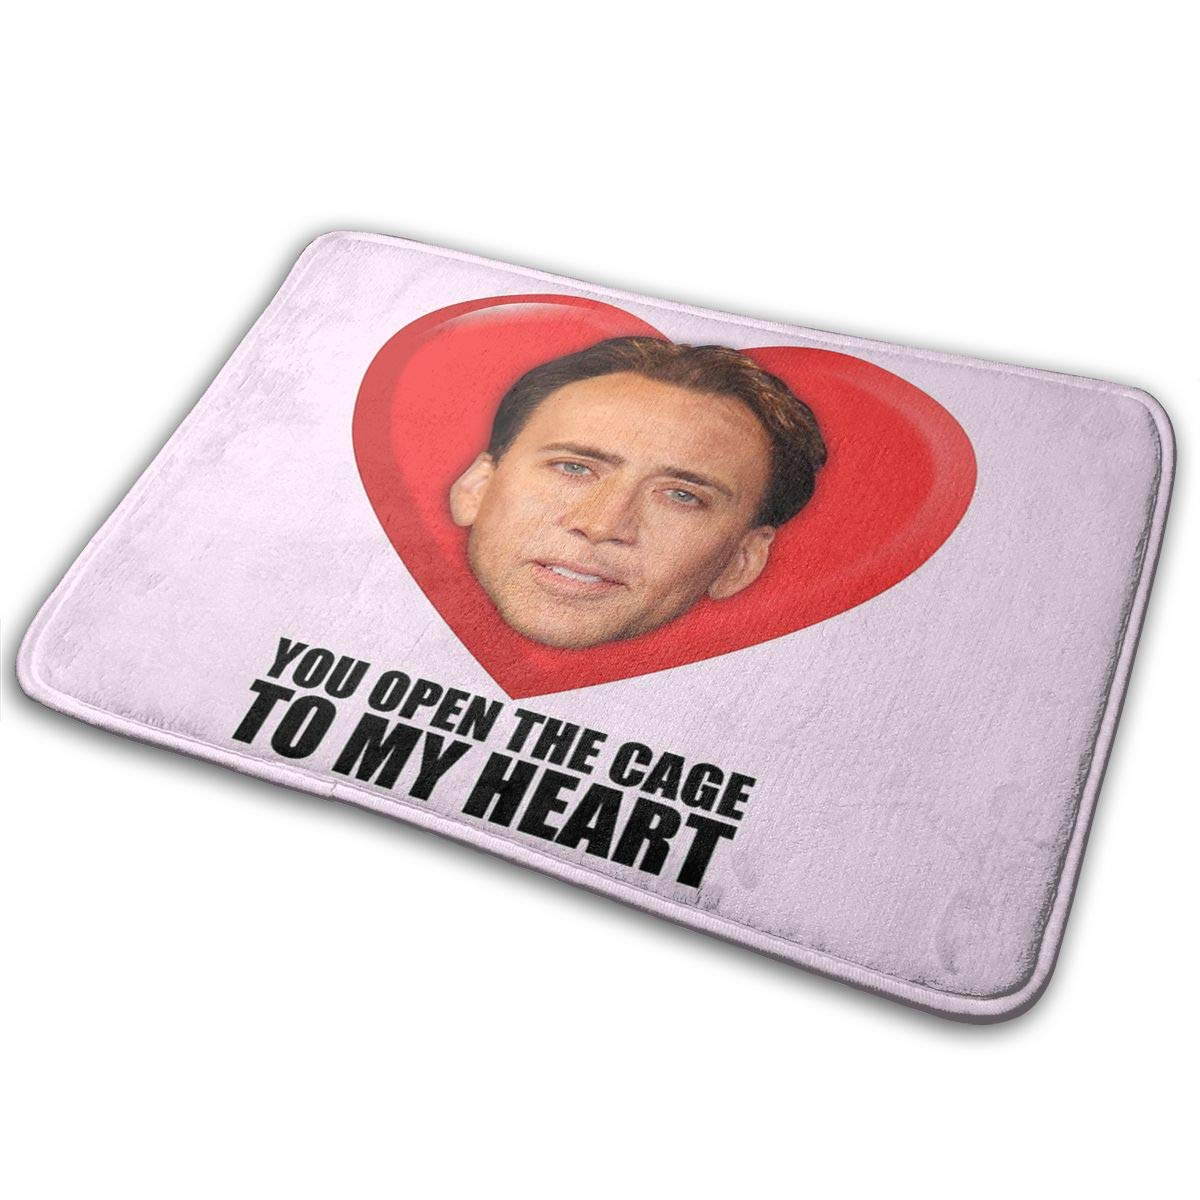 Nicolas Cage You Open The Cage to My Heart Super Absorbent Mat Interior and Exterior Decorative Carpet Doormat Bathroom 40x60